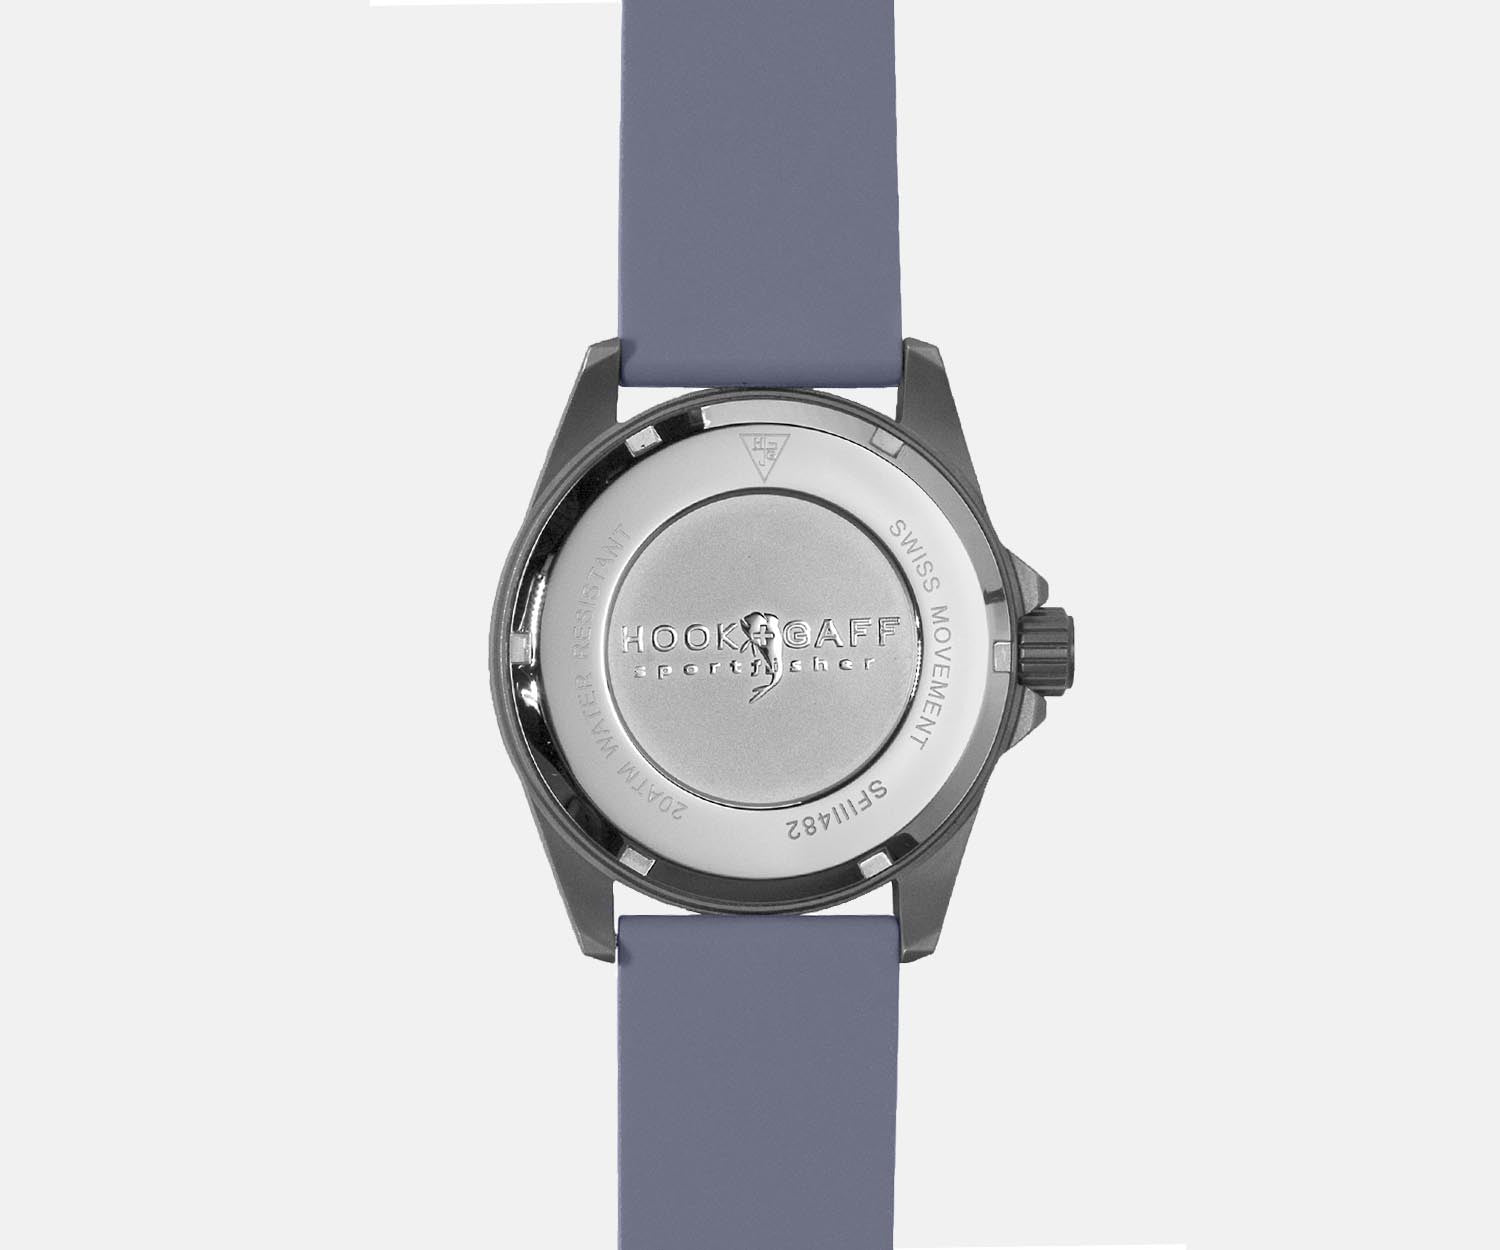 Sportfisher II Silver Moonphase Watch - Gray Dive Strap - Back